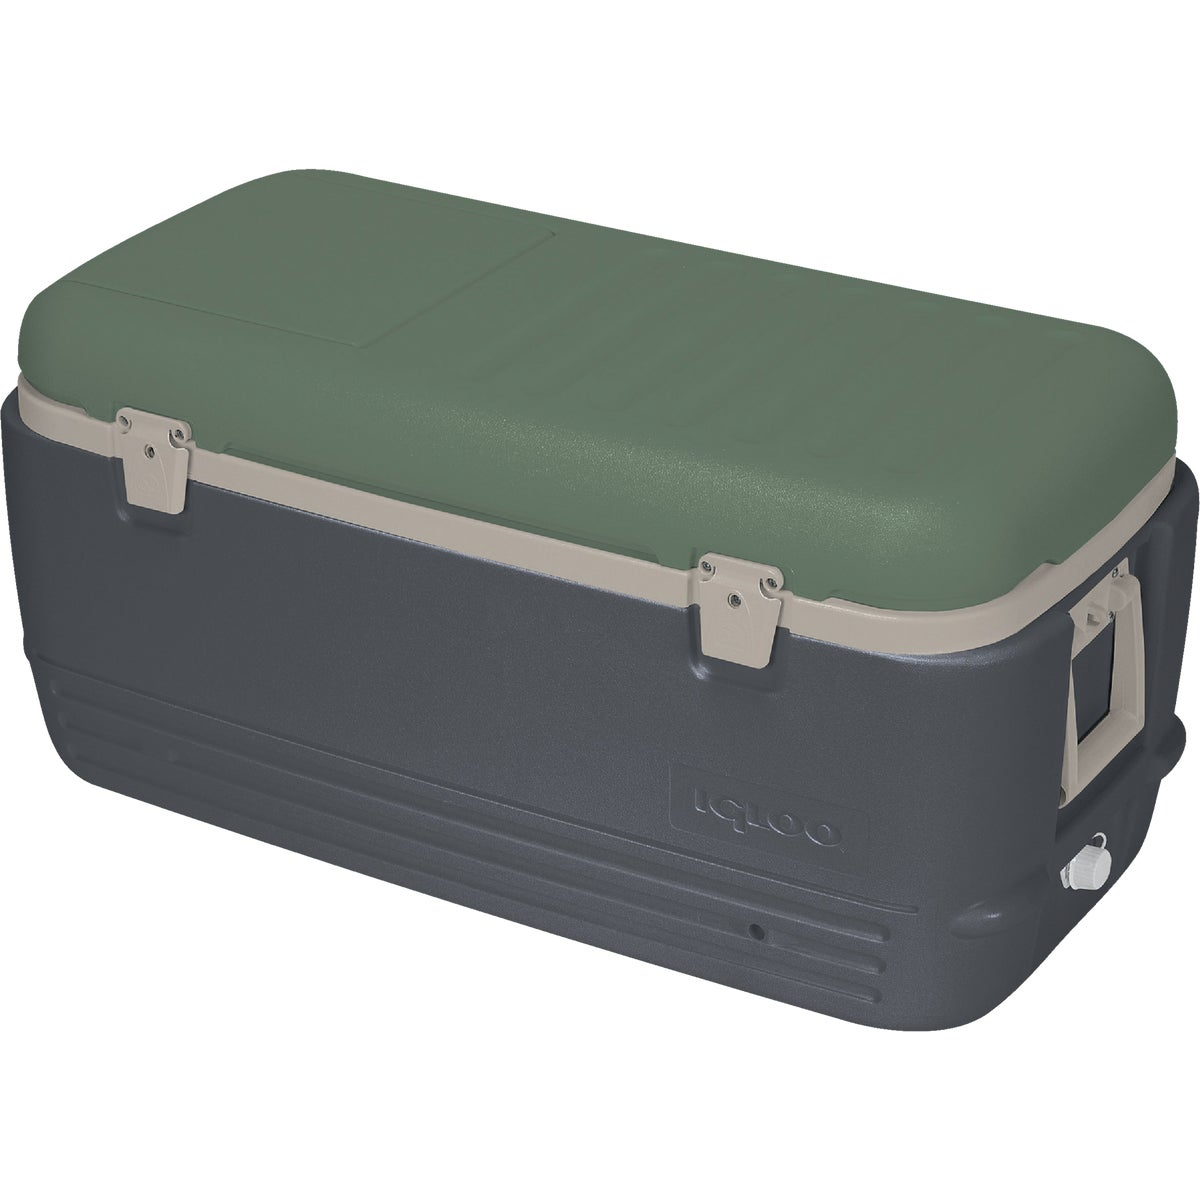 Igloo 165QT MAX COLD COOLER 44419